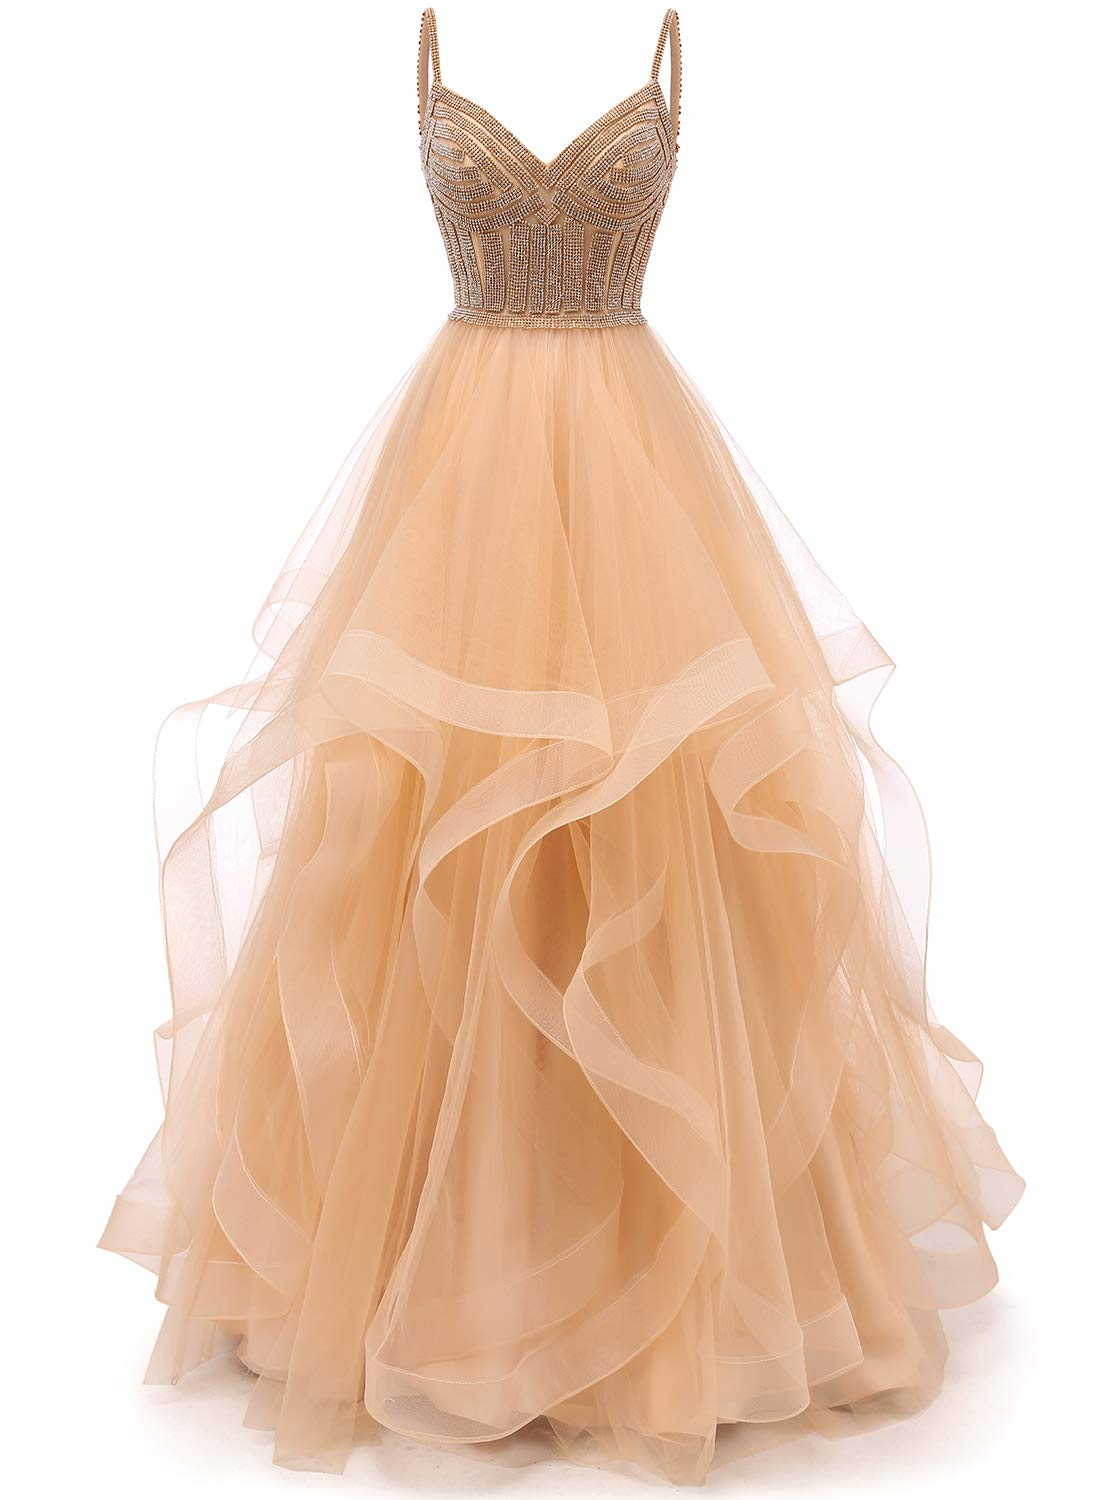 Prom Dresses - Women's Deep V-Neck Prom Dress Long Backless Tulle Evening Gown